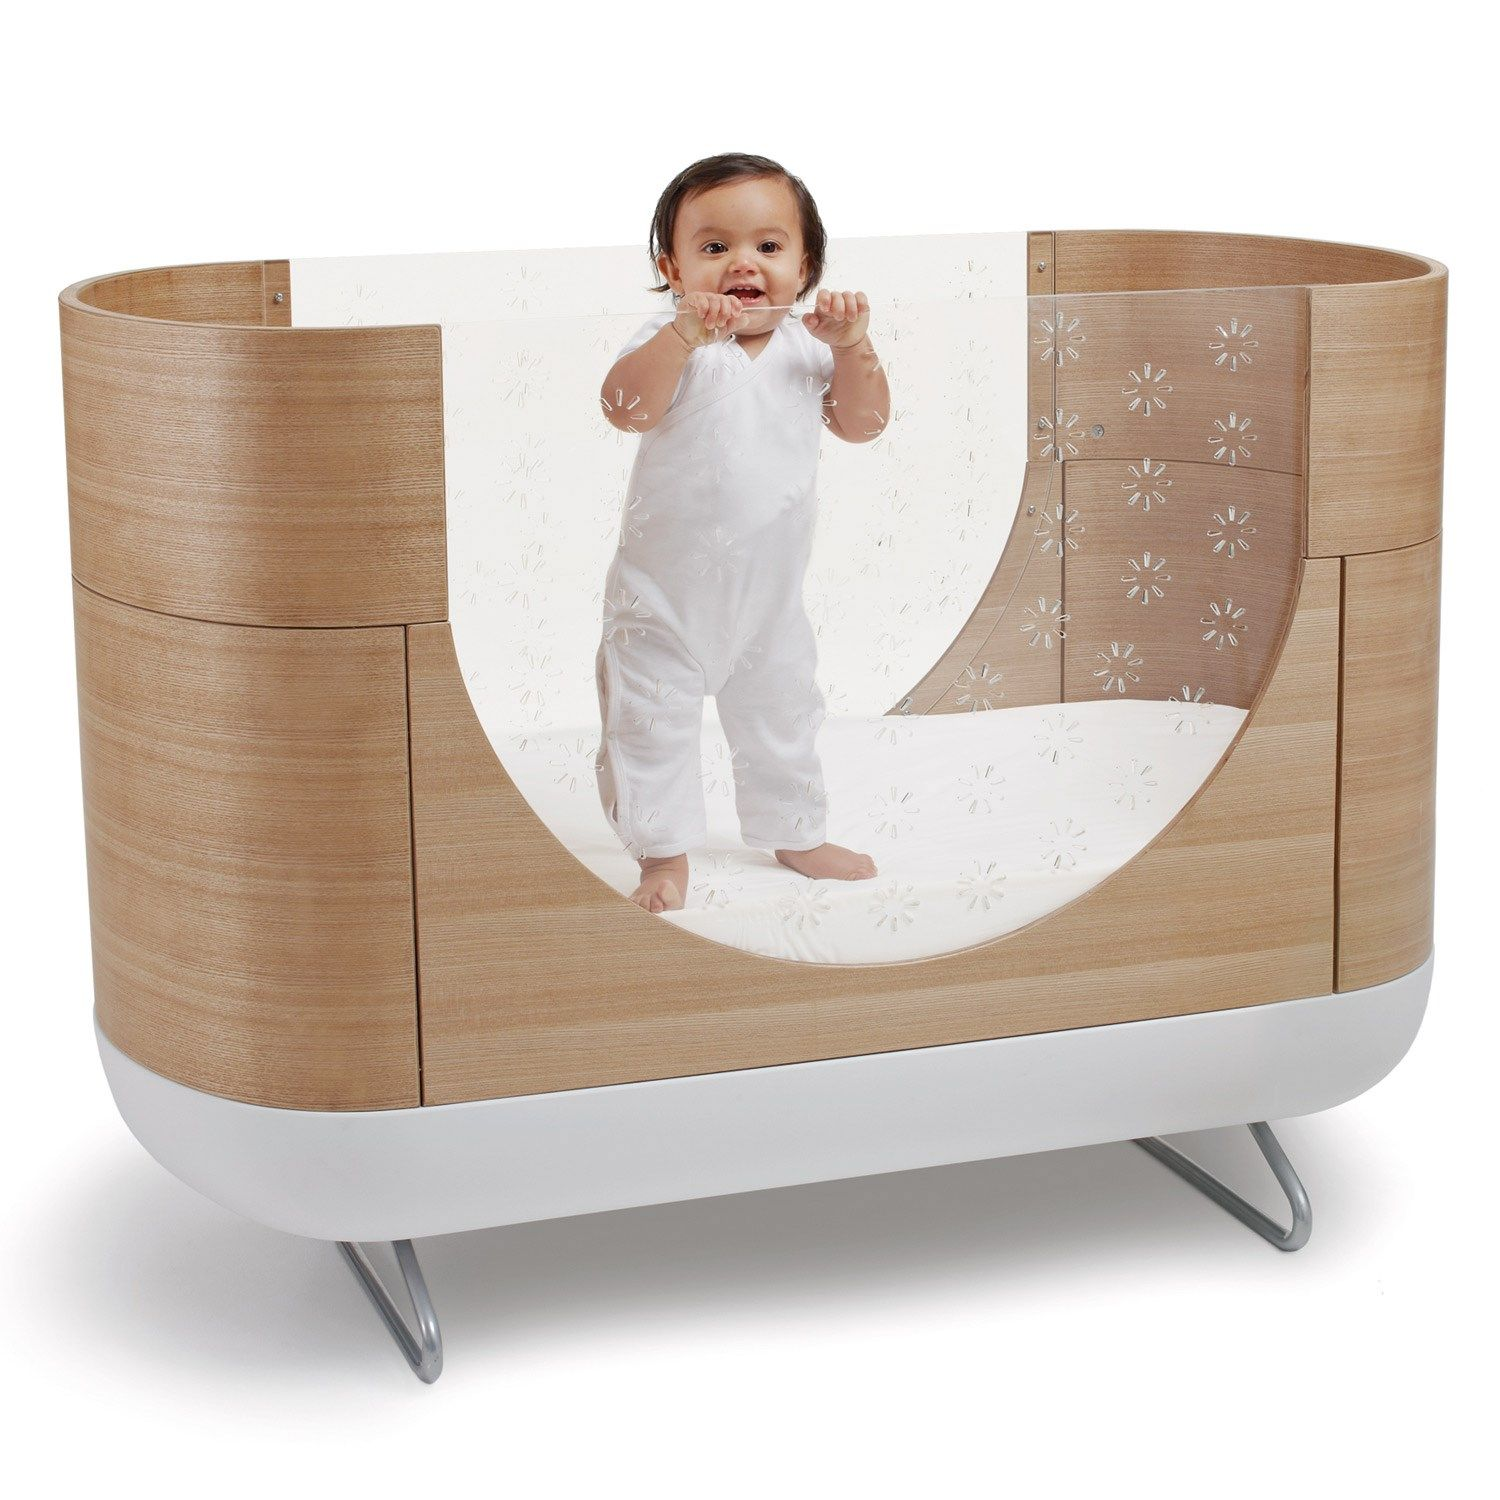 cool tone nursery walnut of cribs baby and ideas mod size bedding interesting u modern designer wooden for bed letto s beds uk furniture convertible modena two full crib in